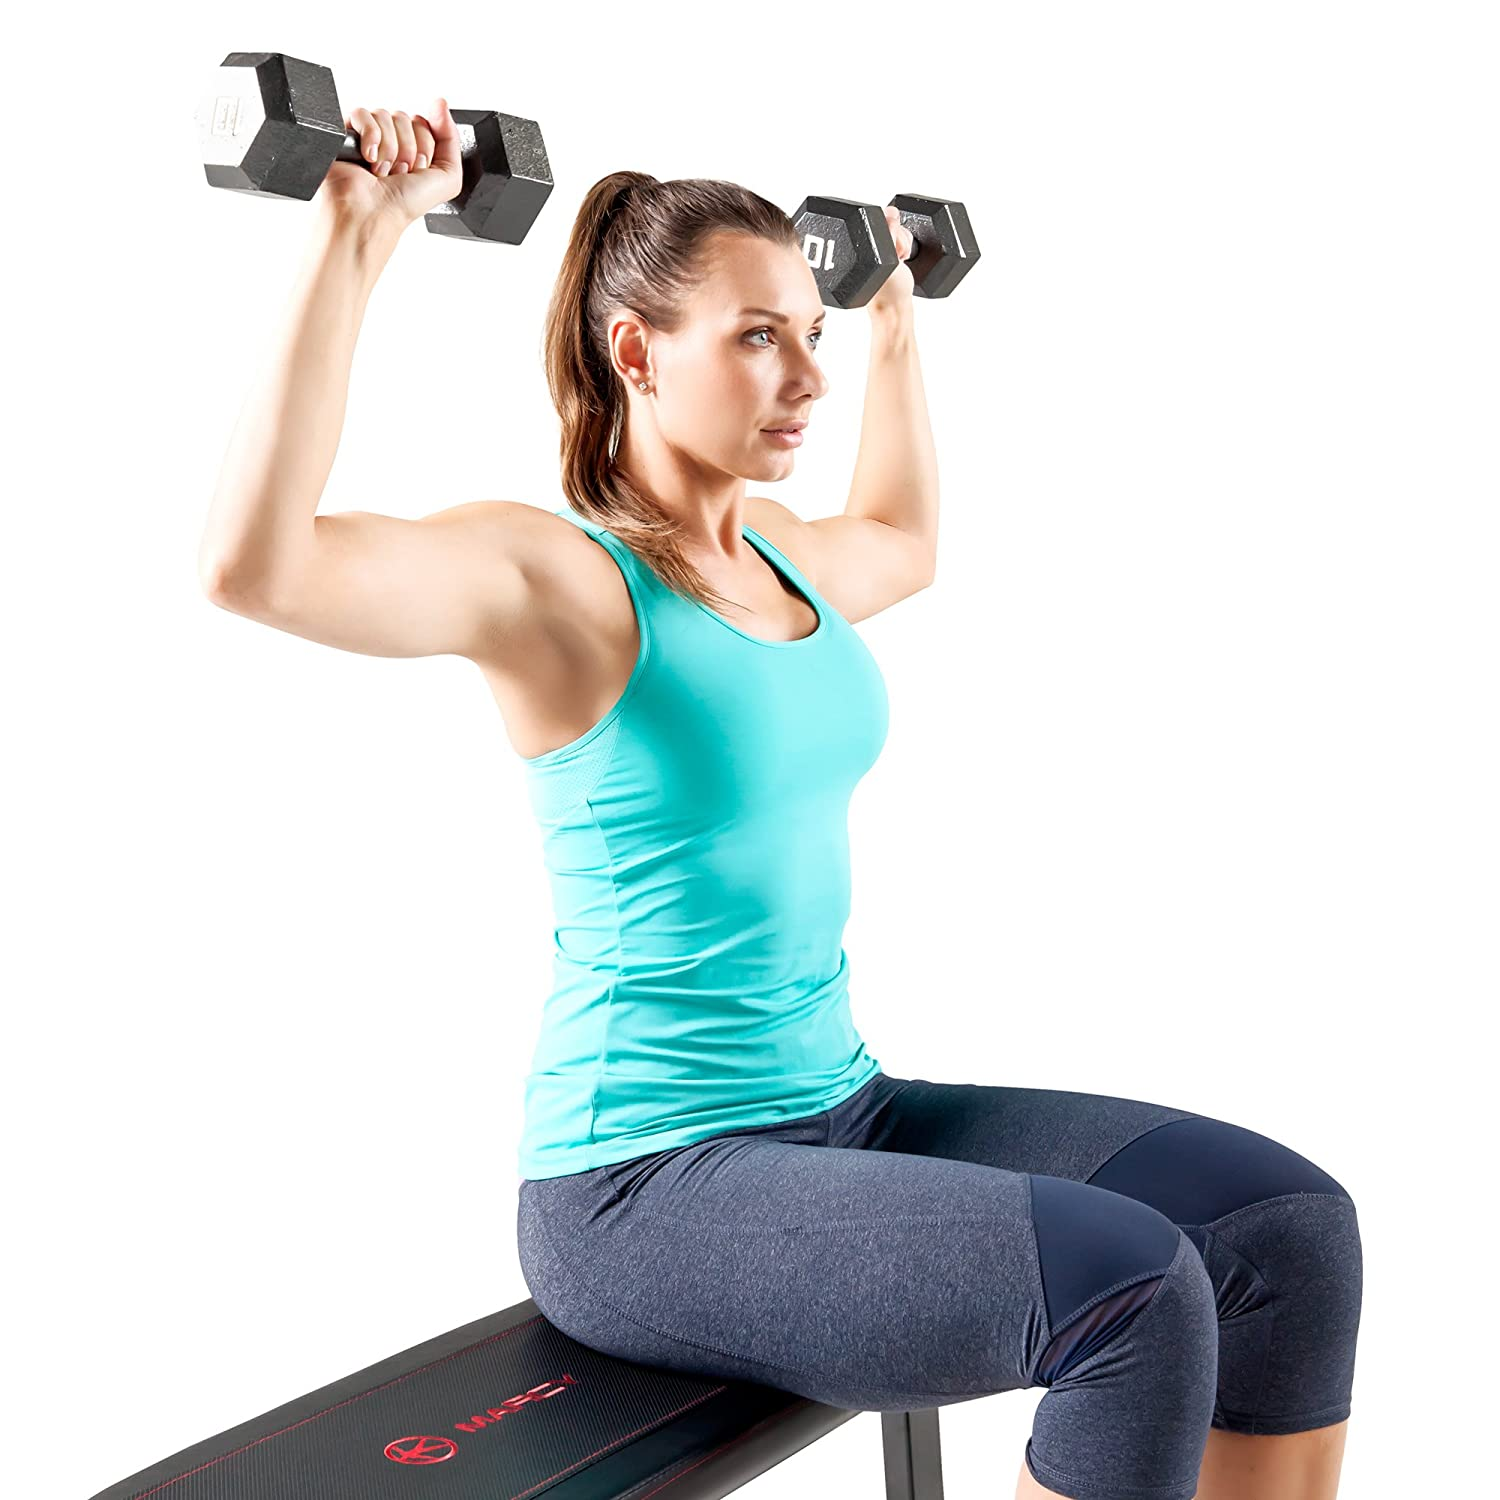 Weight Lifting Gym Fitness Workout Exercise Training Body: Flat Weight Bench Workout Fitness Gym Home Exercise